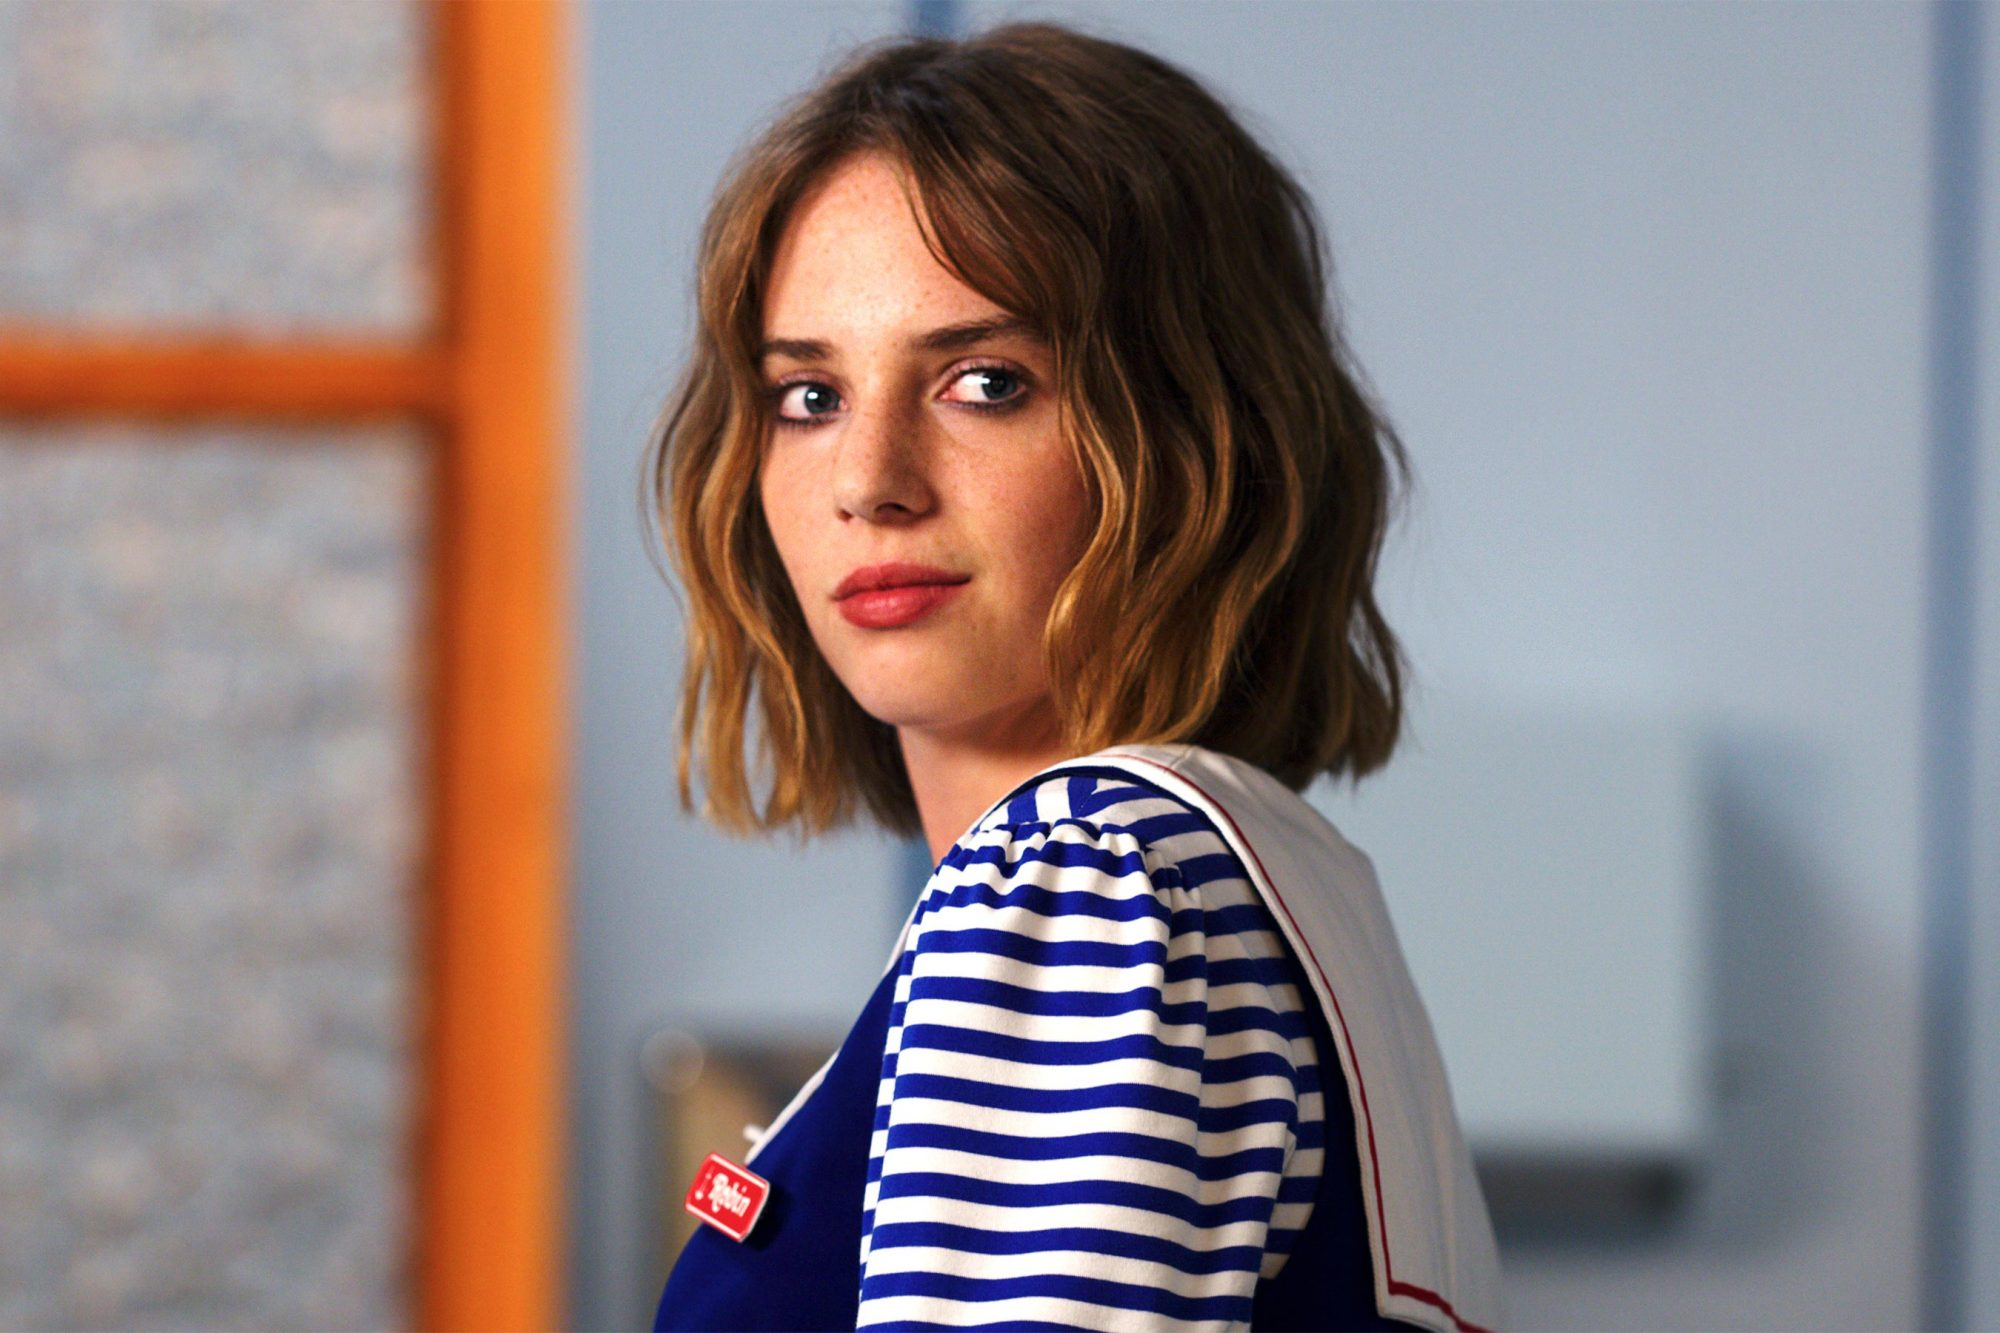 Stranger Things 3 Season 3 Maya Hawke as Robin CR: Netflix